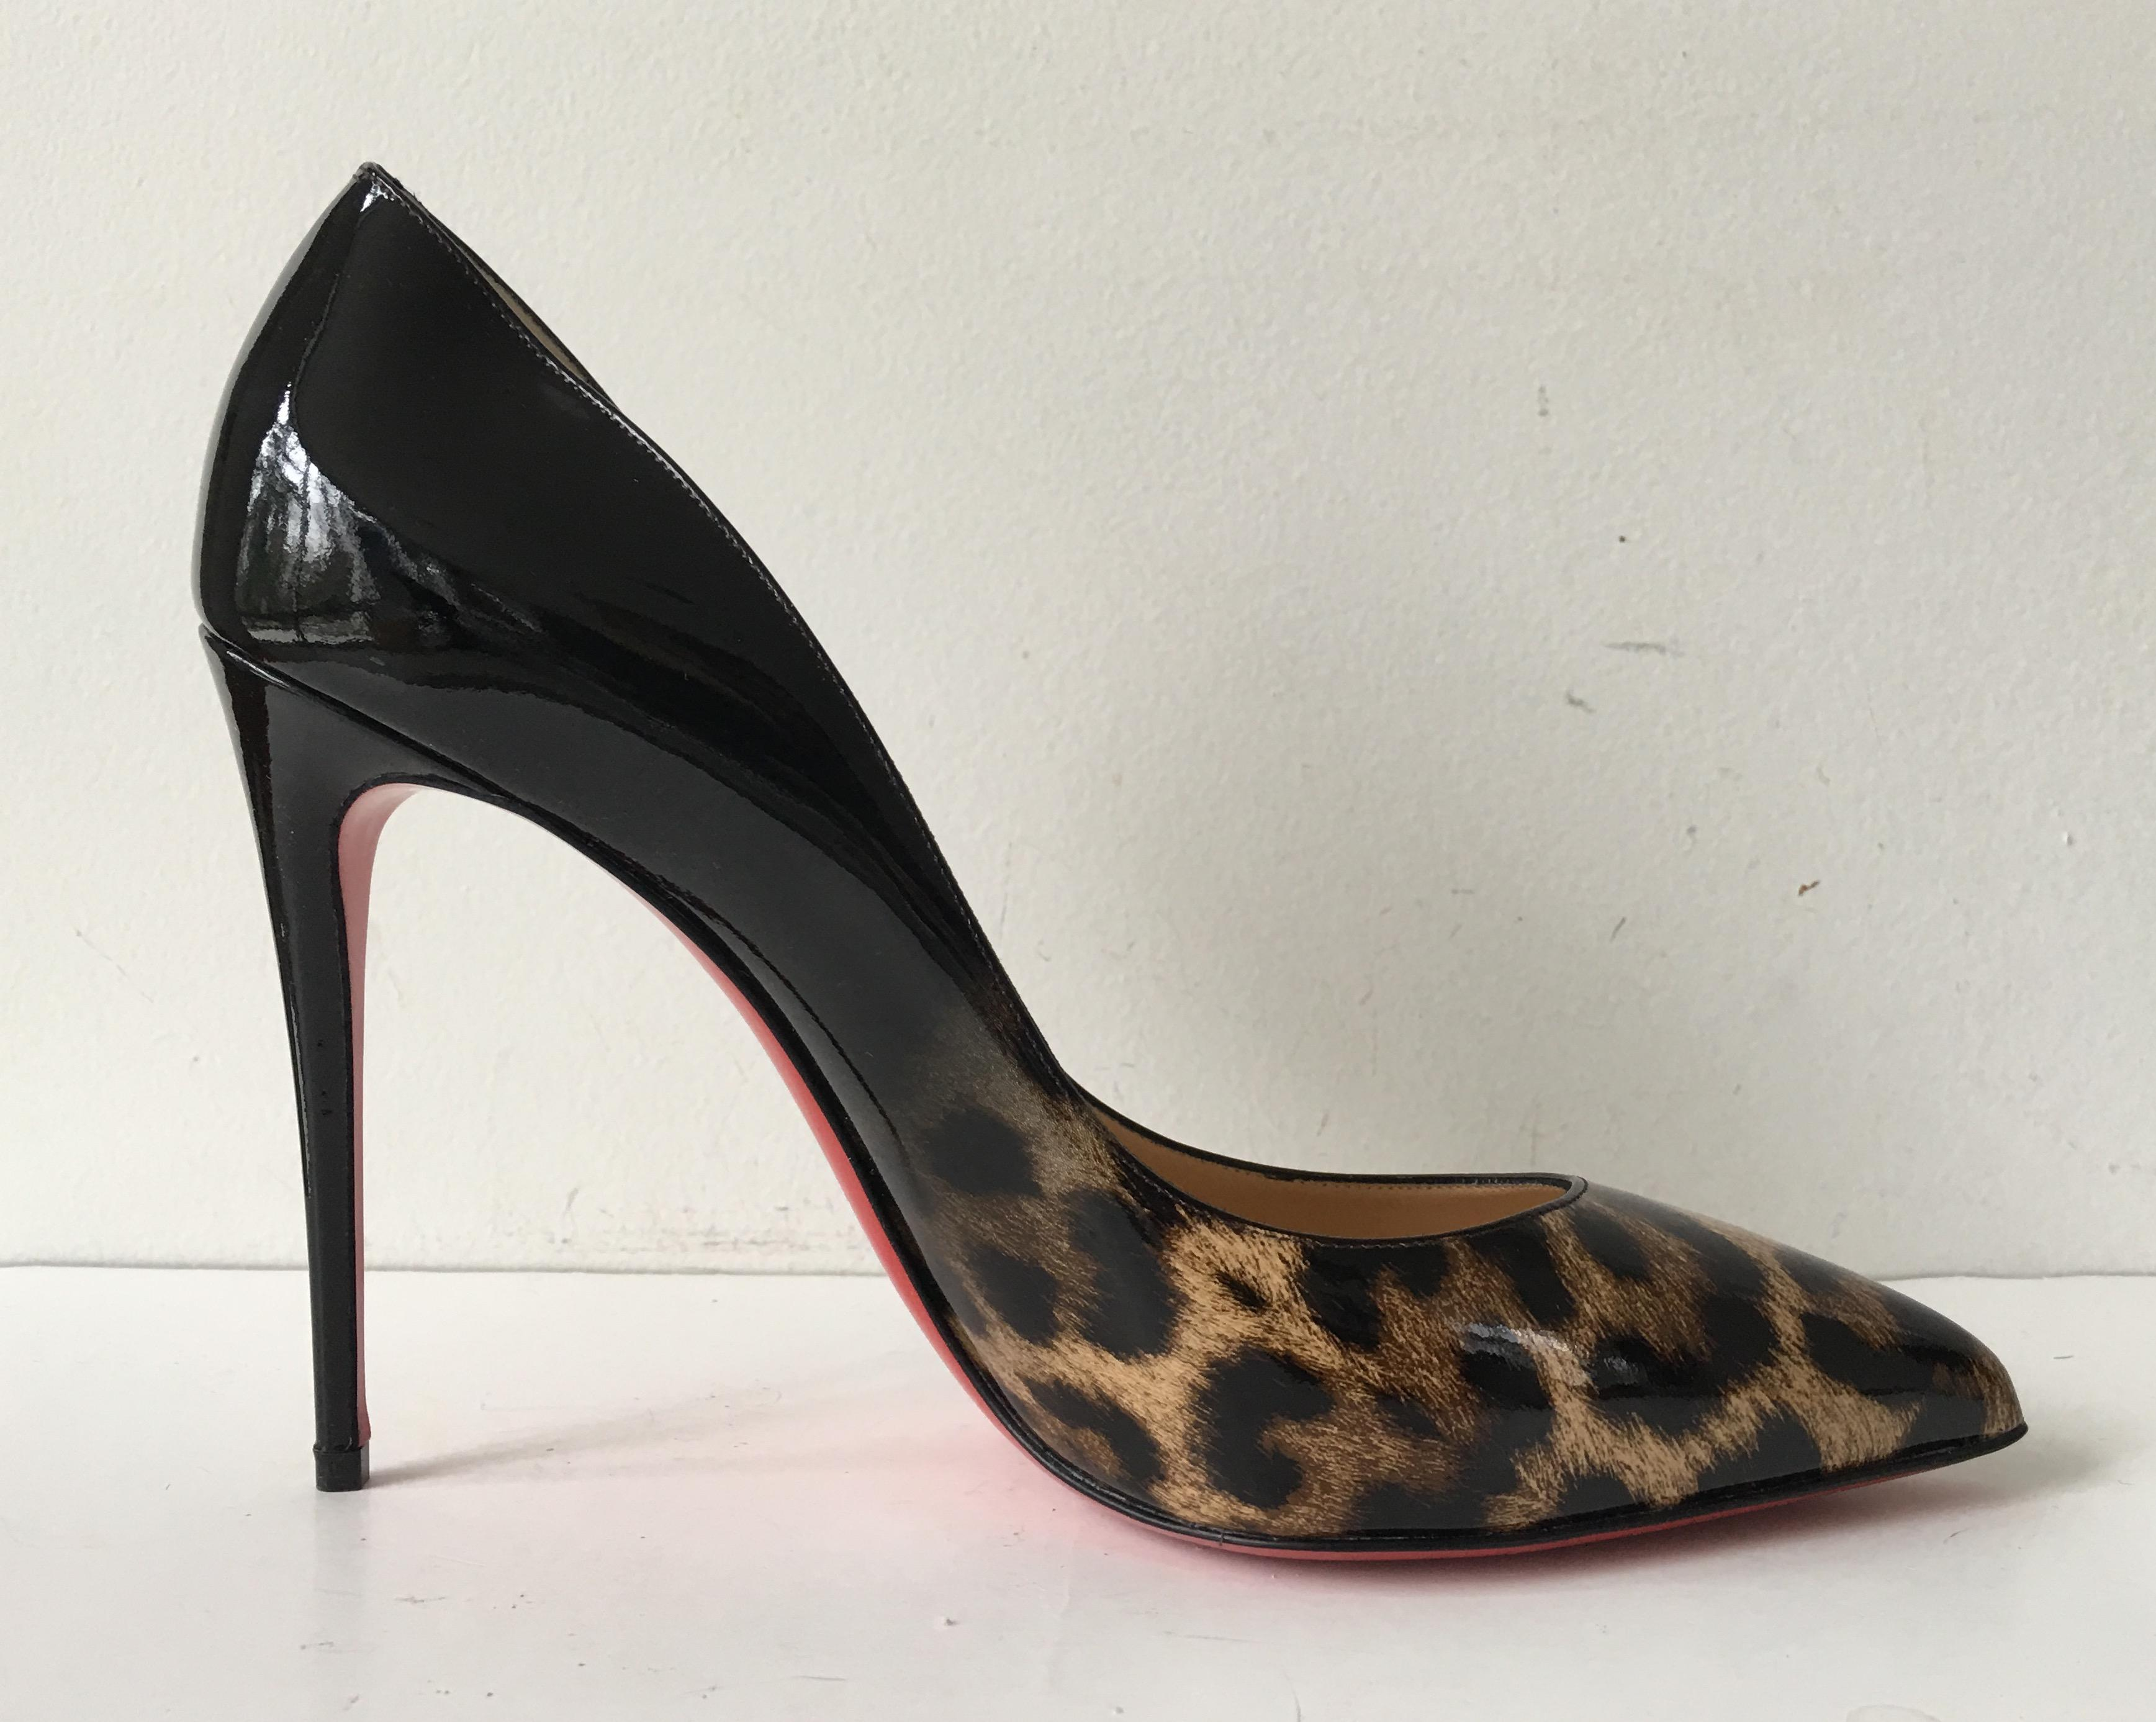 Pigalle Follies 100 Printed Patent-leather Pumps - Blue Christian Louboutin T6rTL7Syoq